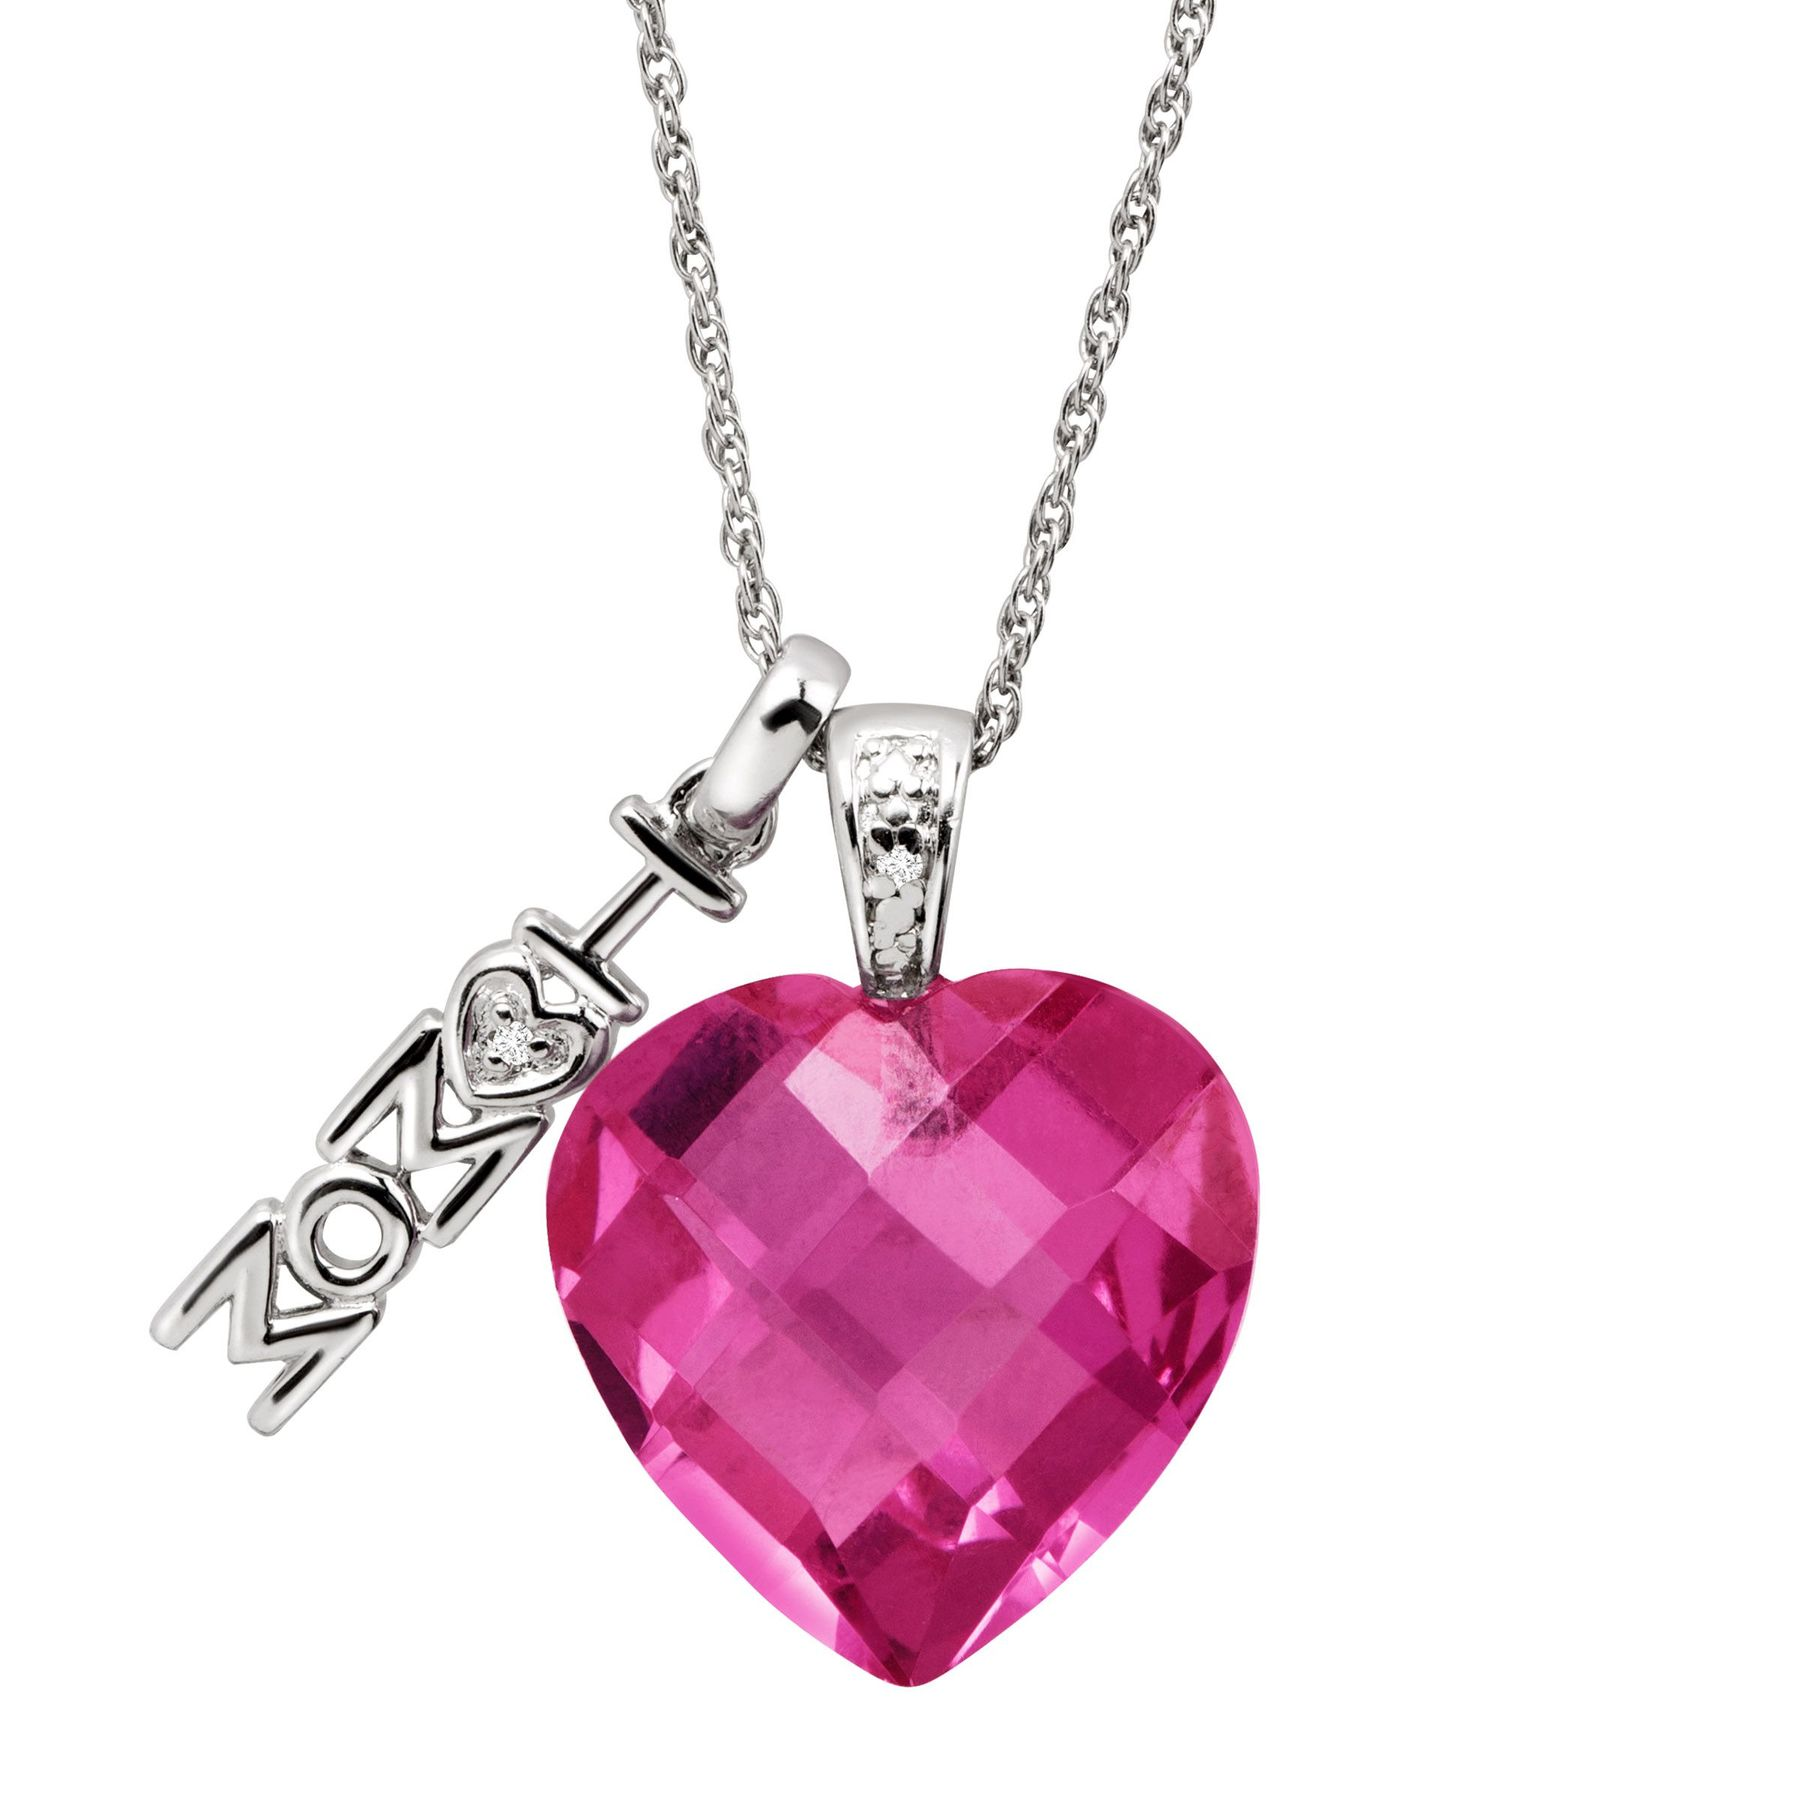 necklaces platinum jewelry tiffany m diamond wid fit and in with pendant constrain pink sapphire pendants fmt a ed id soleste hei